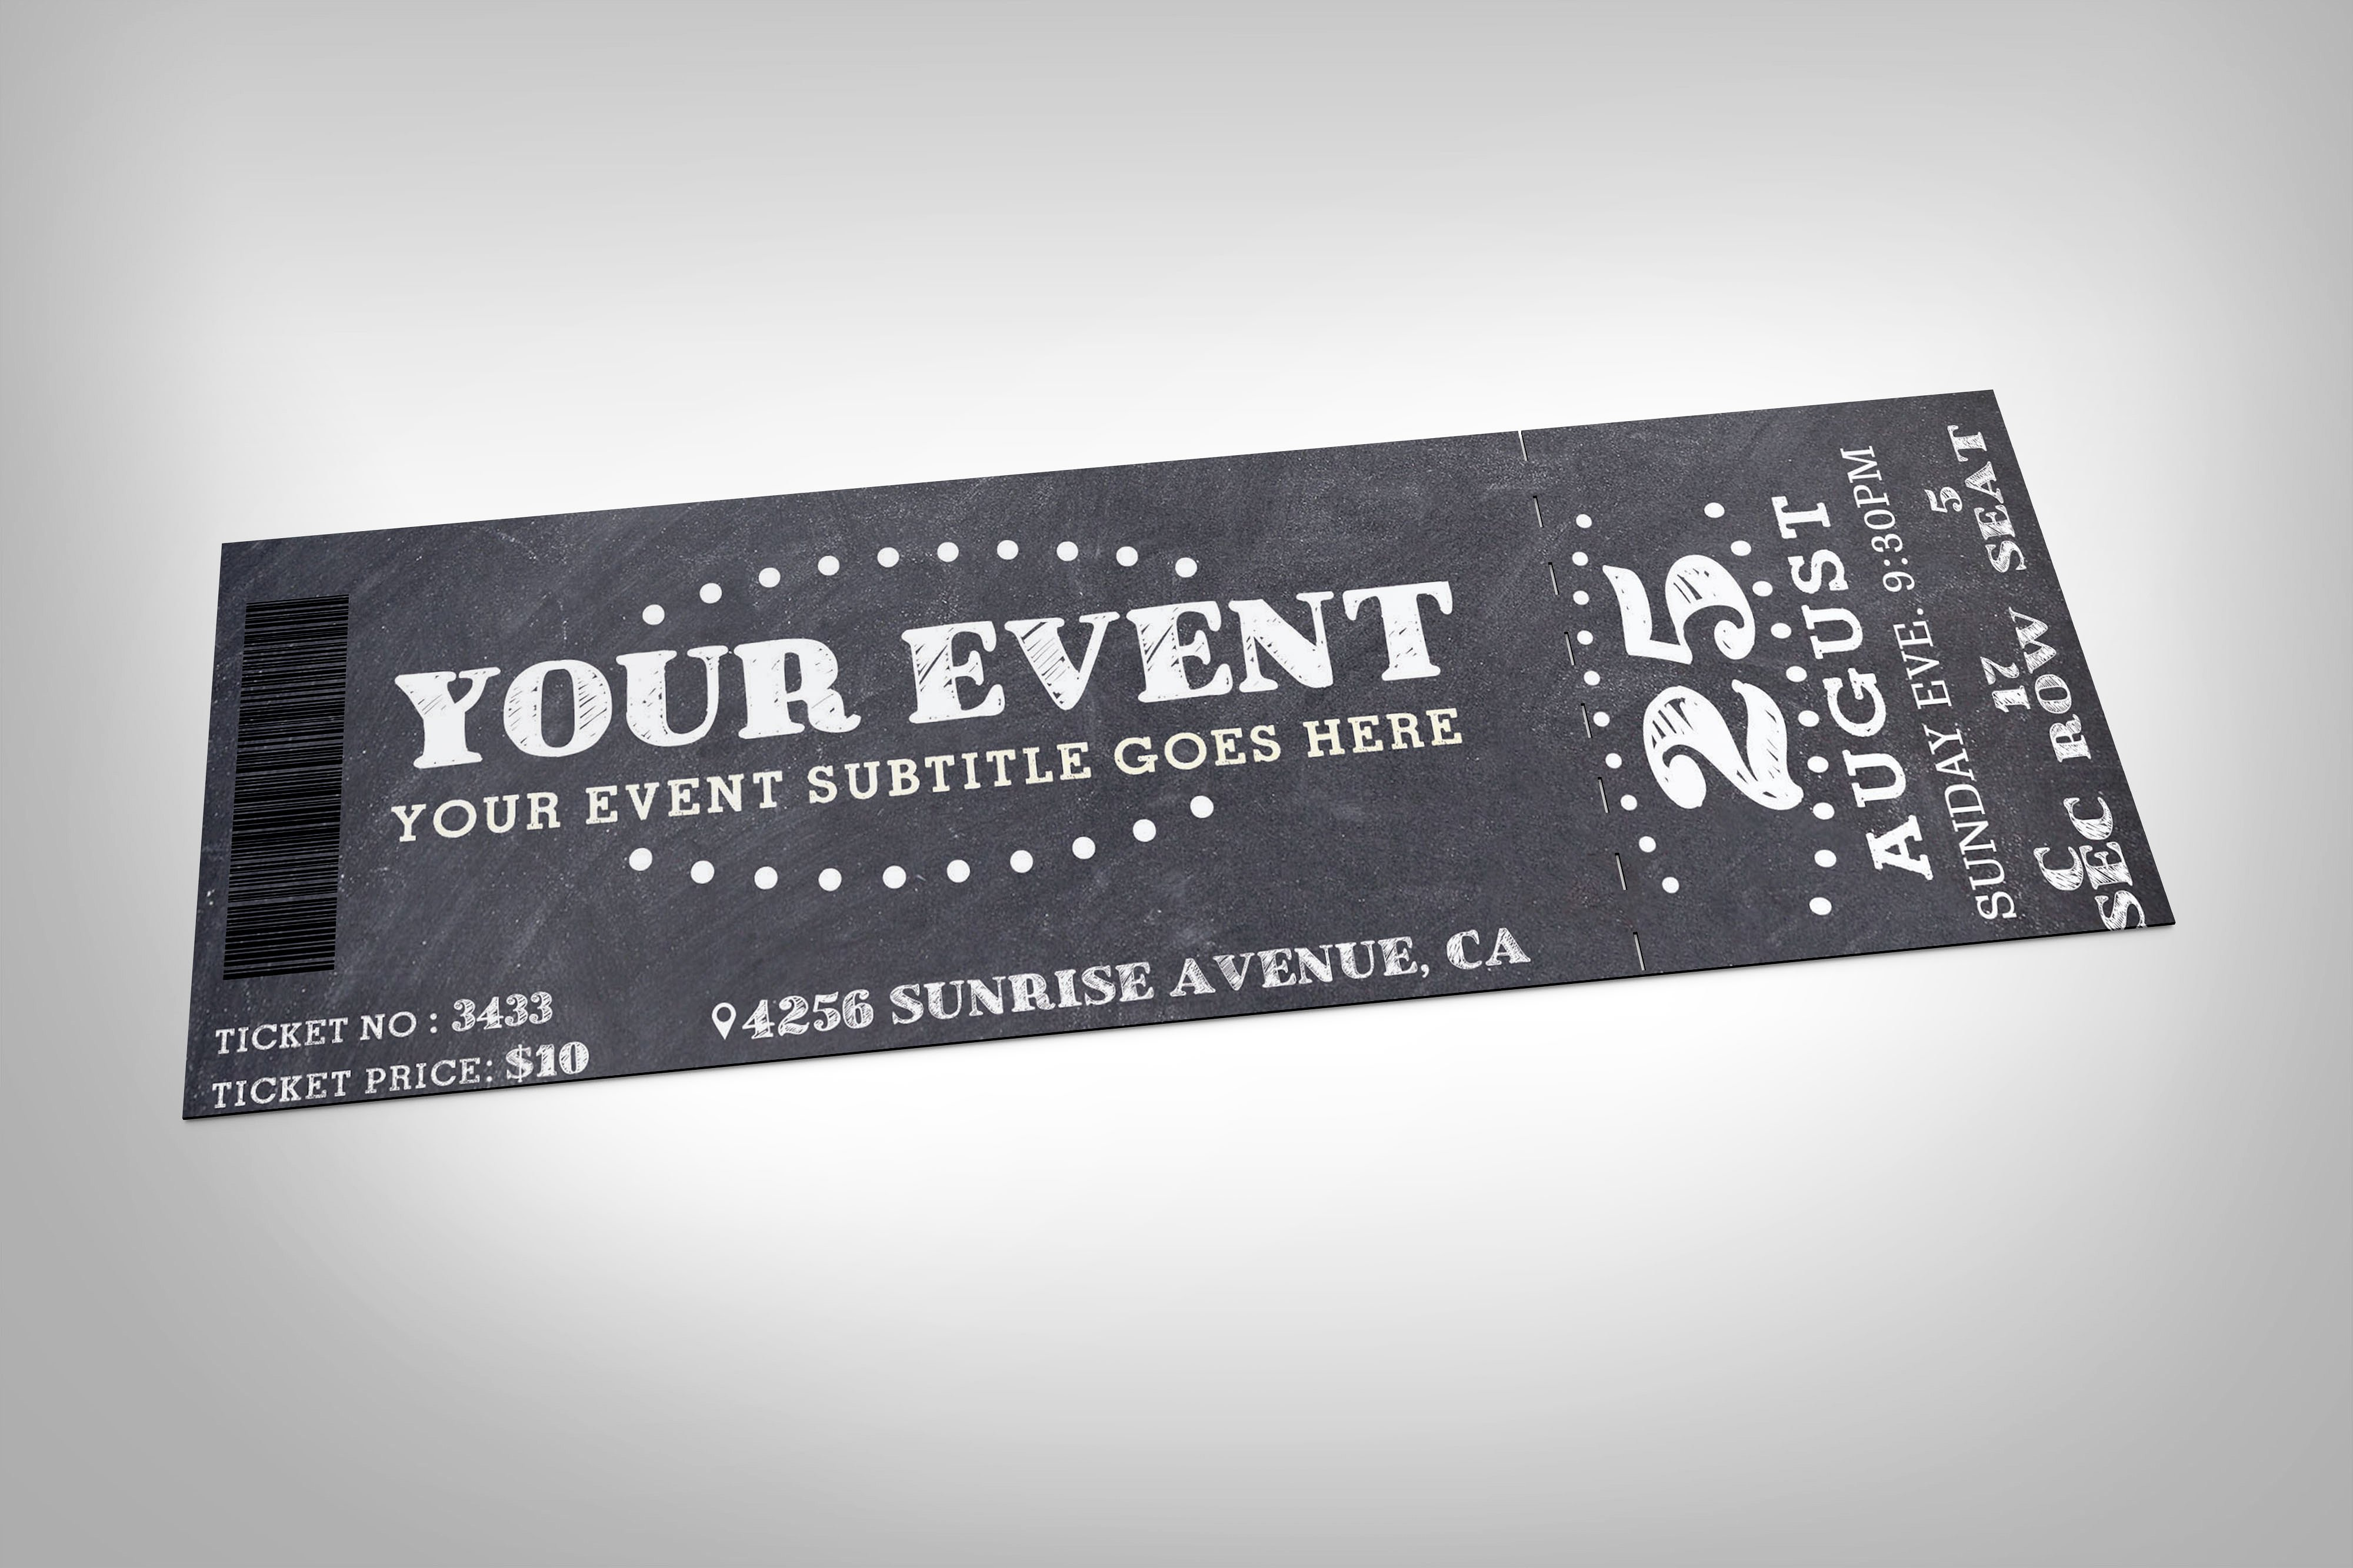 Event Ticket Templates Design Trends Premium PSD Vector - Event ticket template photoshop